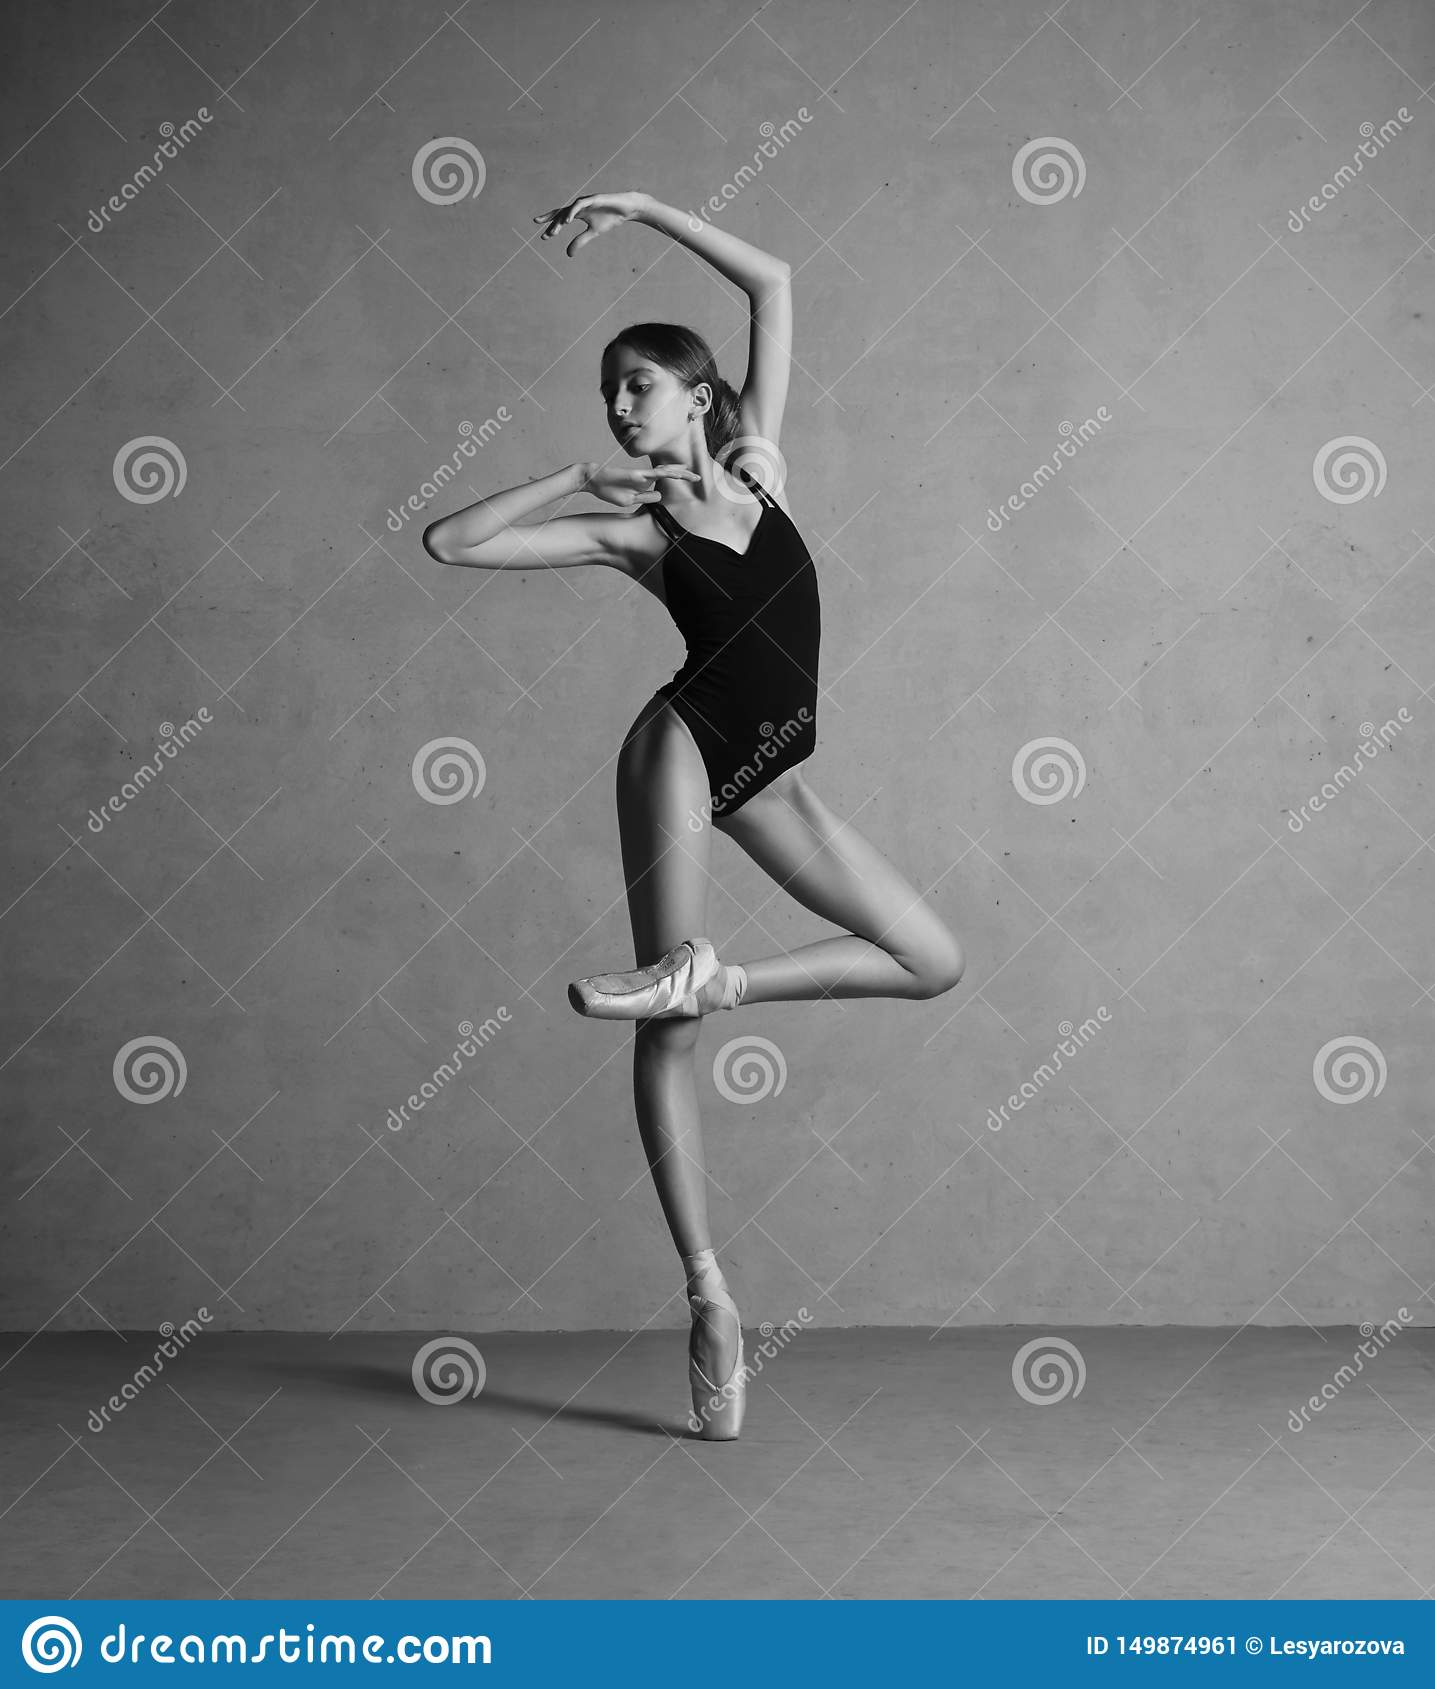 Flexible dancers legs performing in the white colored room